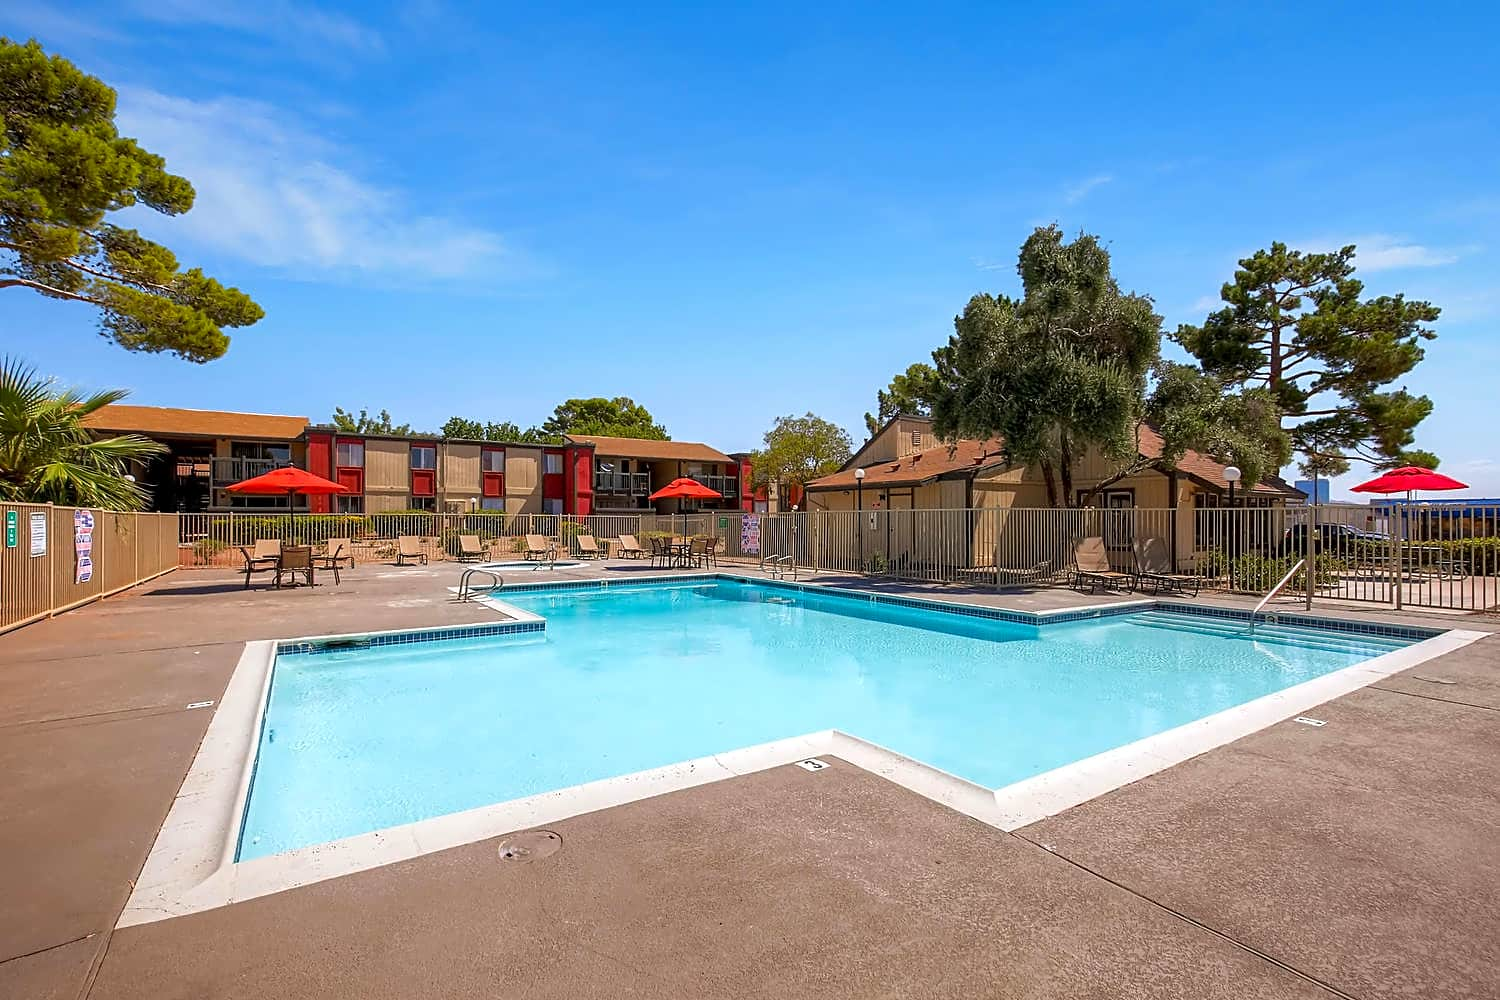 Apartments Near UNLV City View for University of Nevada-Las Vegas Students in Las Vegas, NV